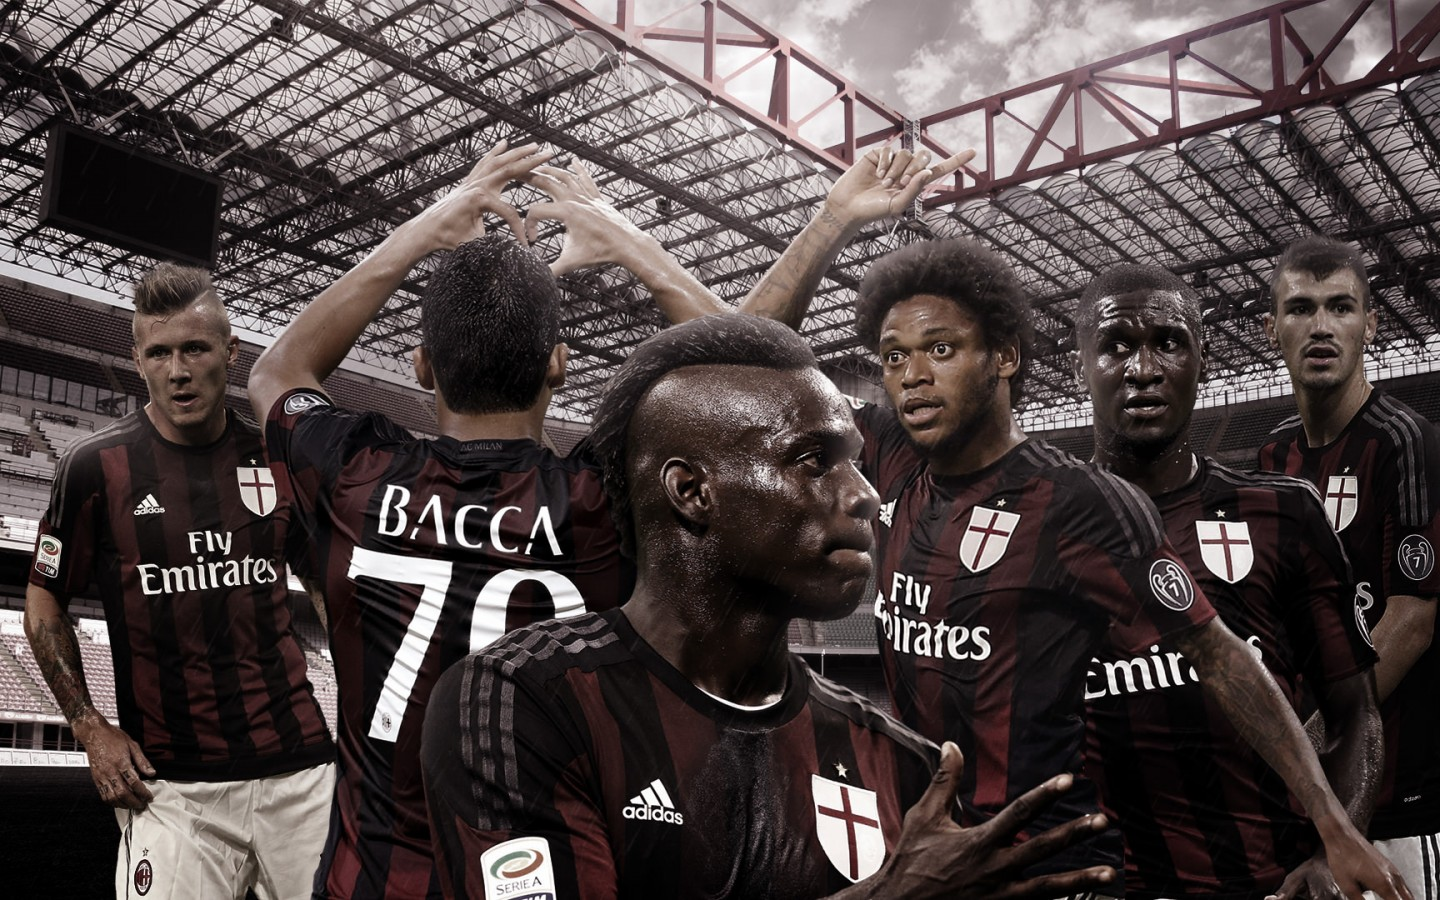 AC Milan 20152016 Wallpaper   Football Wallpapers HD 1440x900